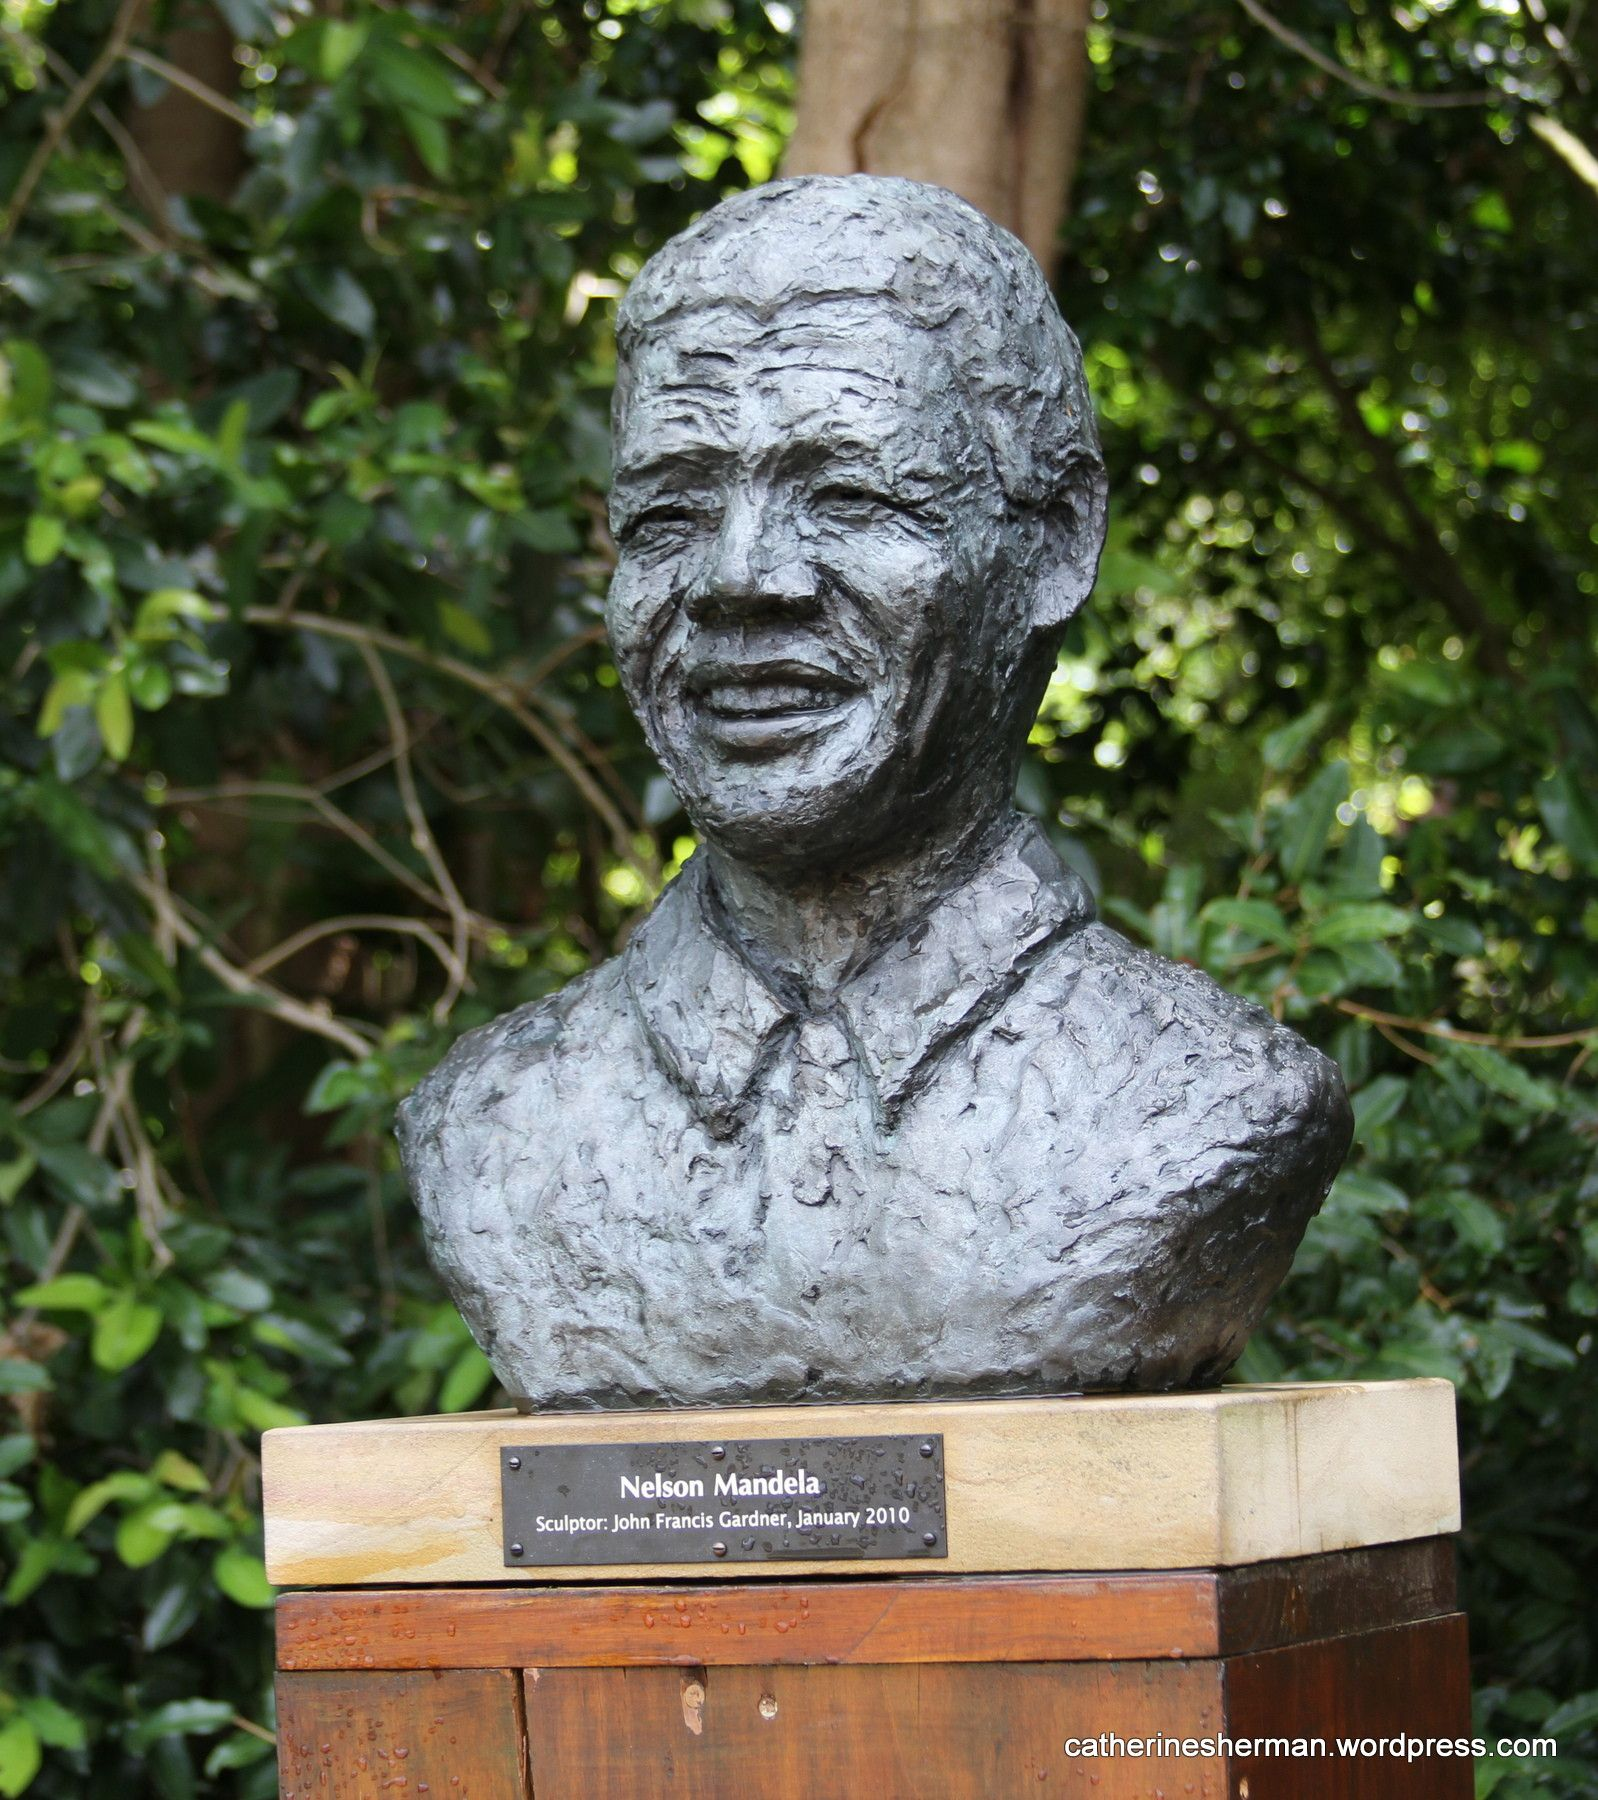 photos of famous sculptures | This sculpture of Nelson Mandela is in Kirstenbosch National Botanical ...